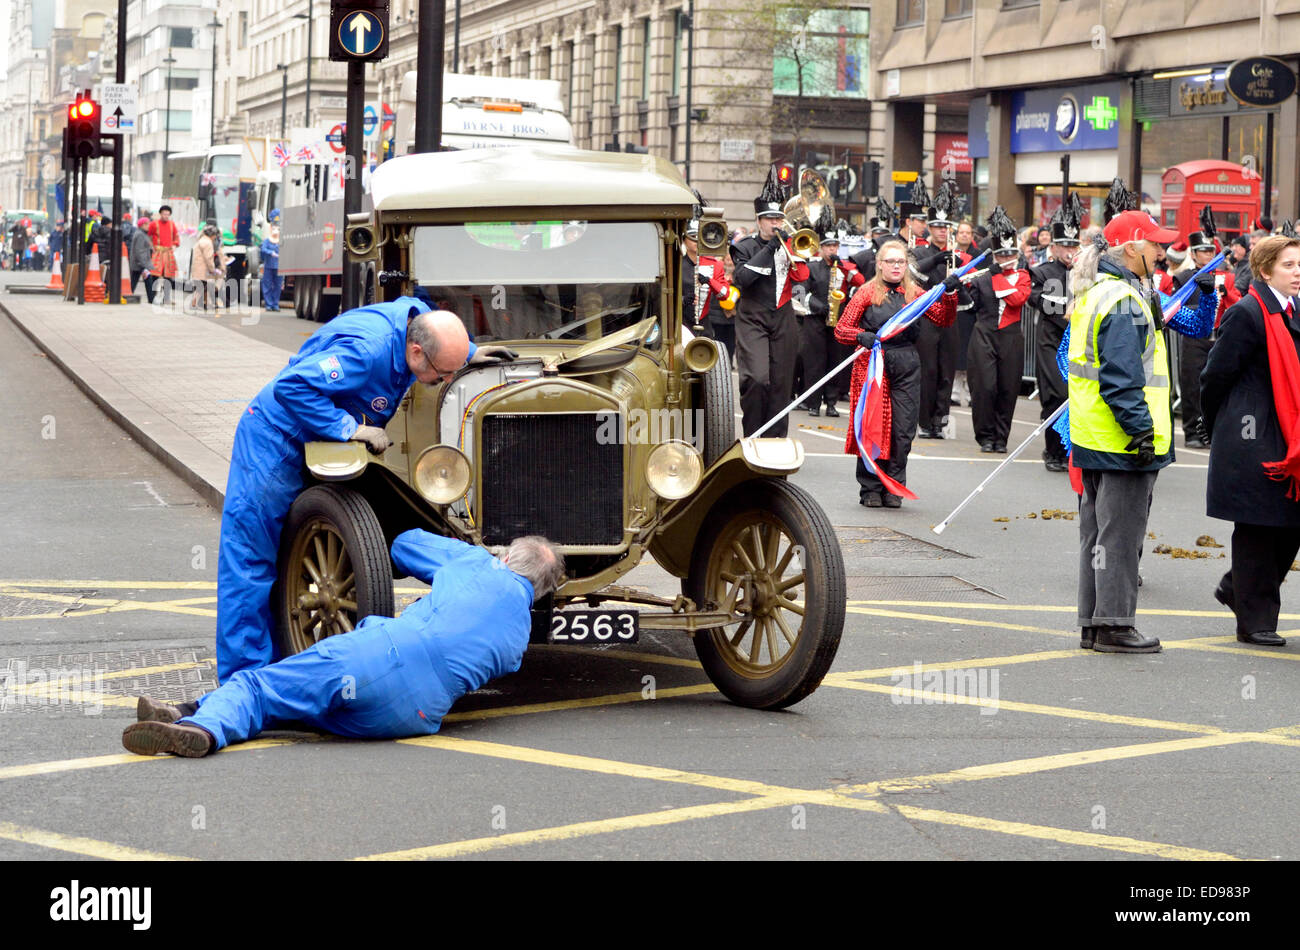 London, 1st January. New Year's day Parade from Piccadilly to Parliament Square. Trying to fix a broken down - Stock Image